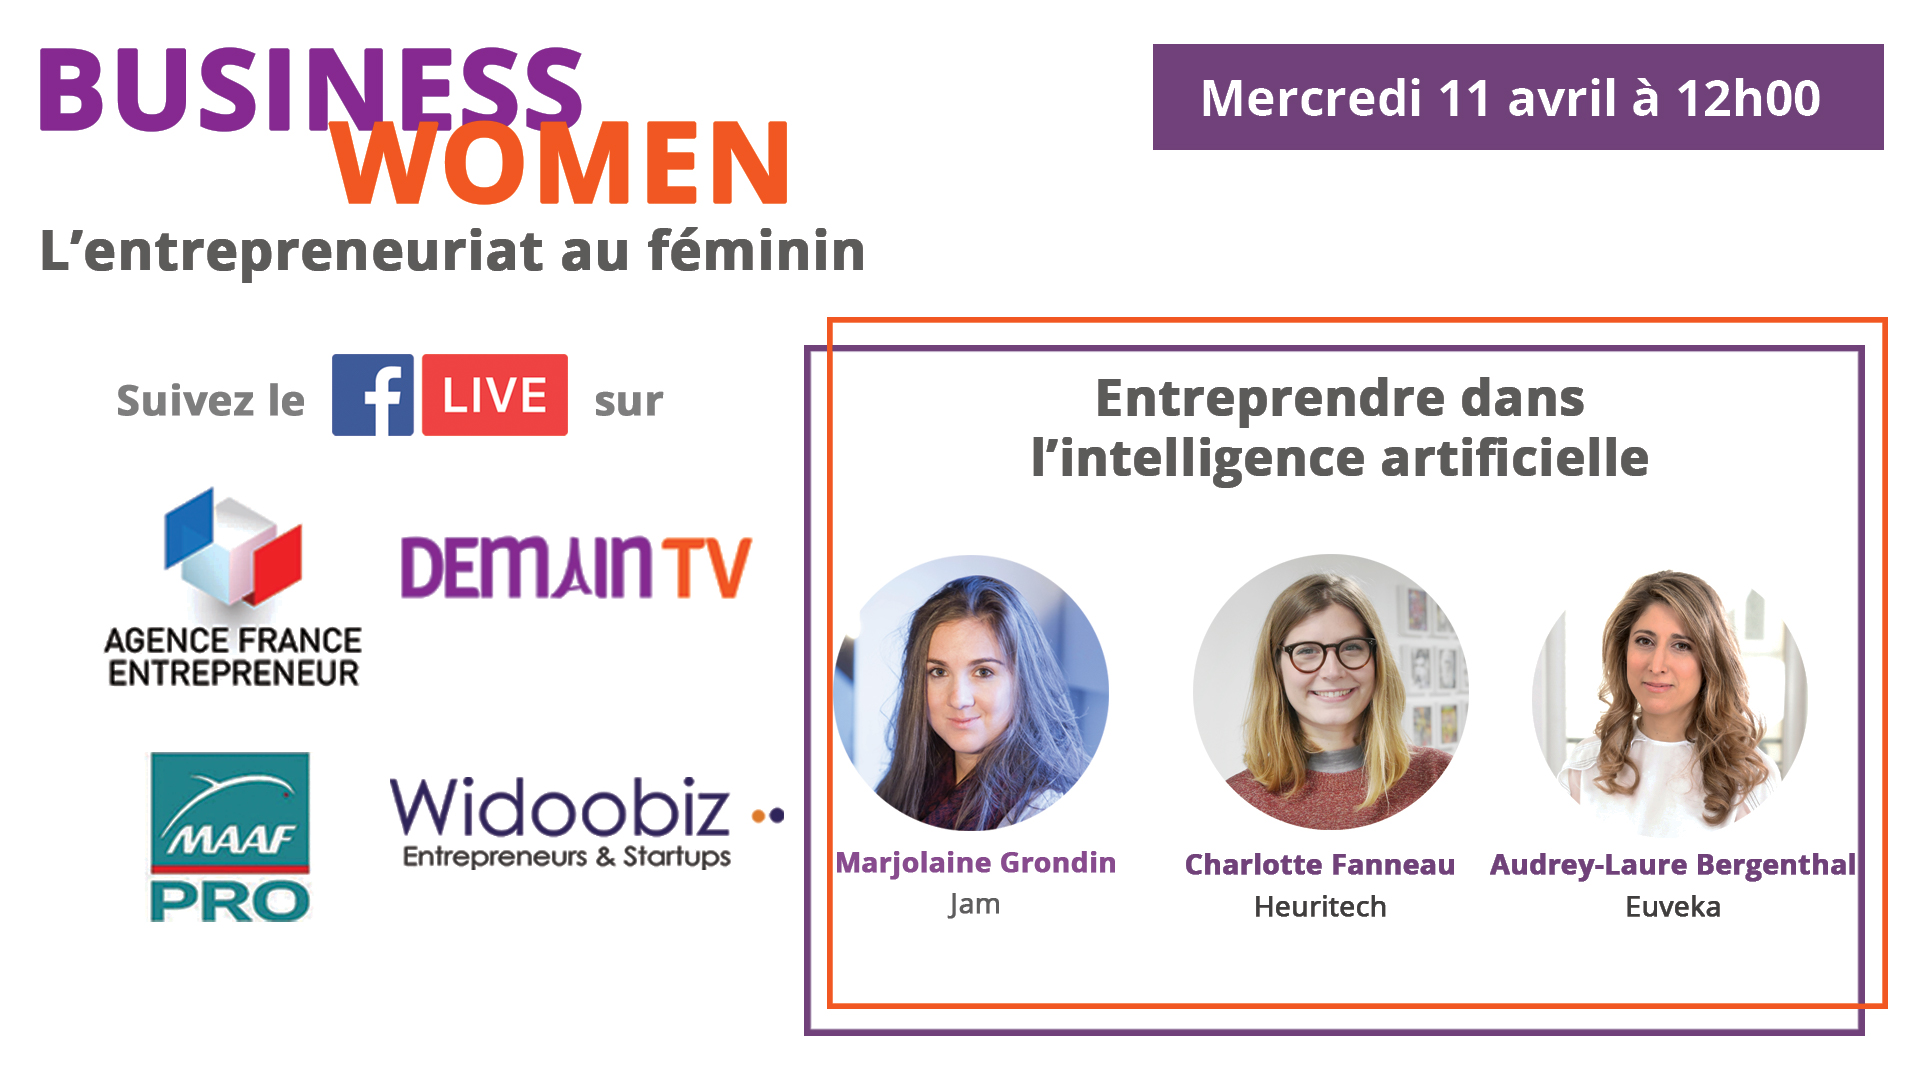 BUSINESS WOMEN : L'INTELLIGENCE ARTIFICIELLE